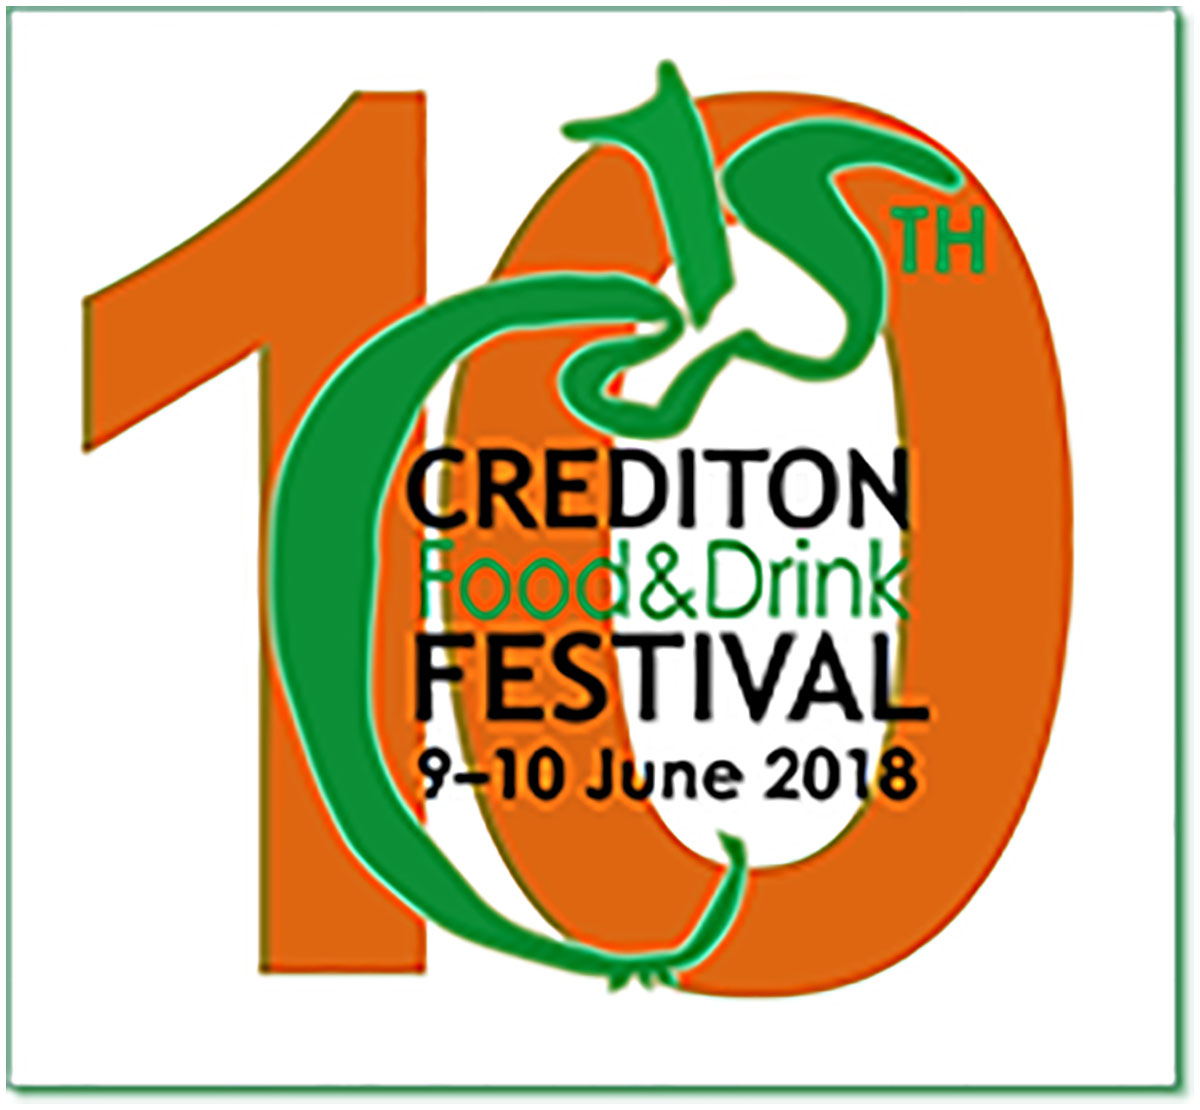 The 10th Crediton Food Festival